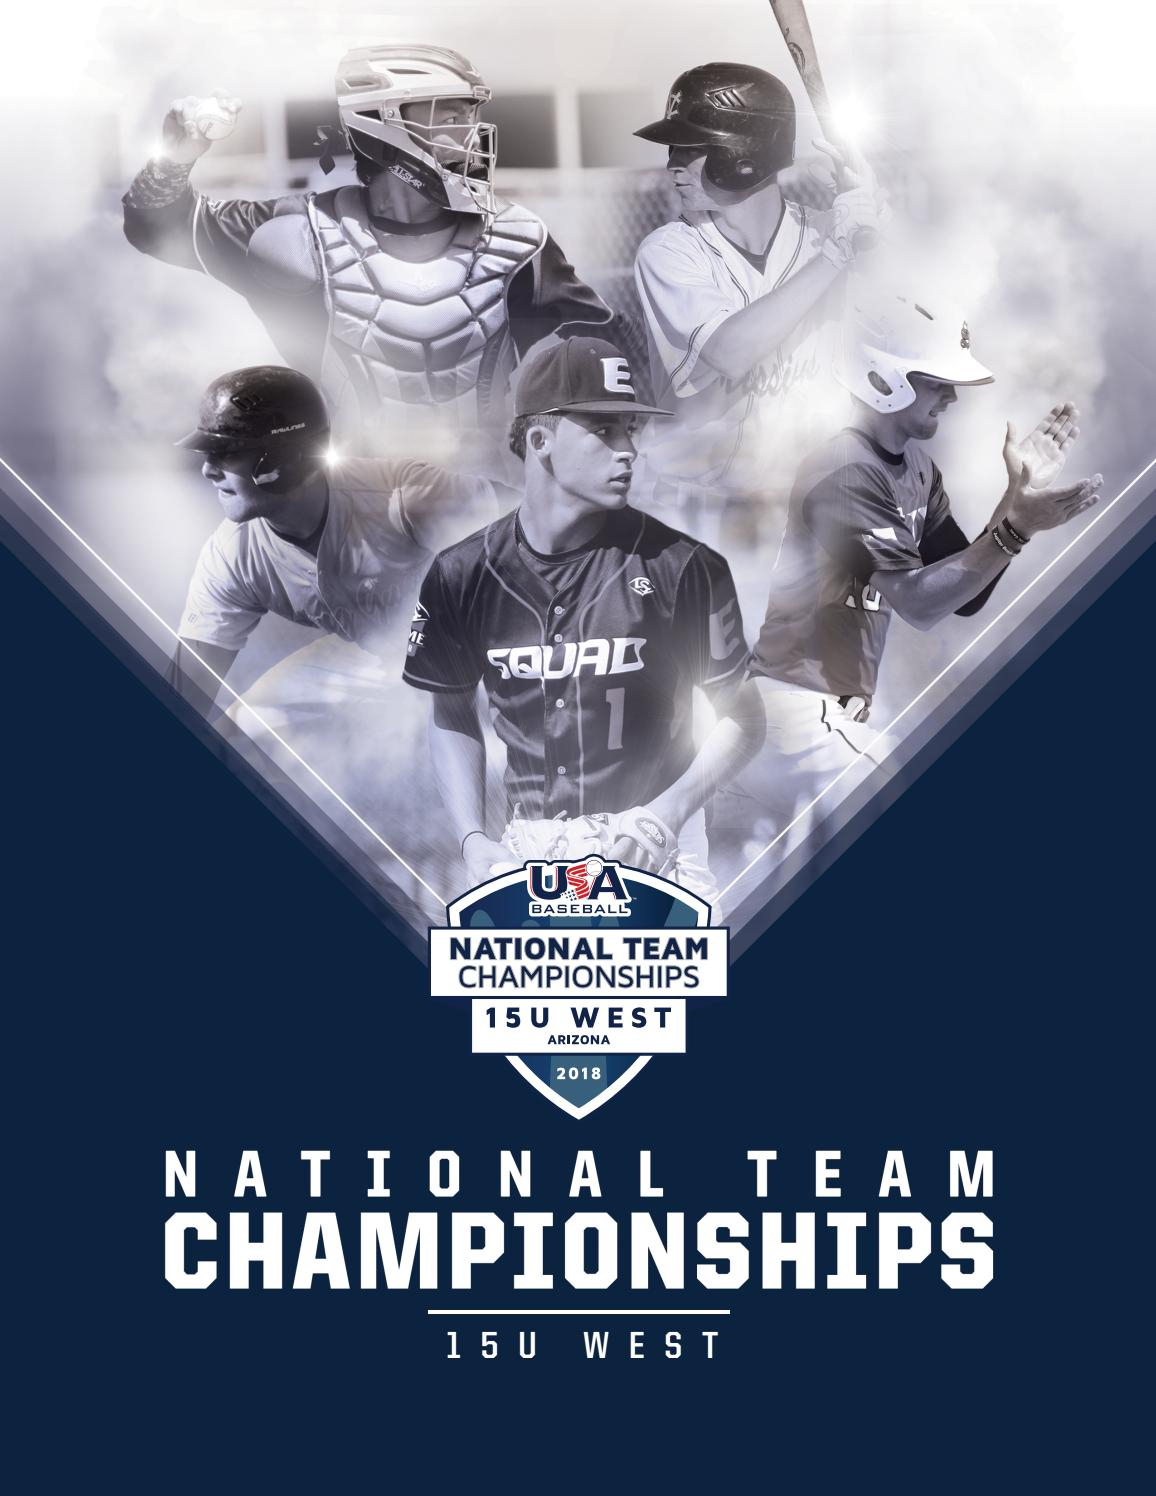 2018 National Team Championships Program - 15U Westusa Within Las Cruces Public School Calendar 2021 20